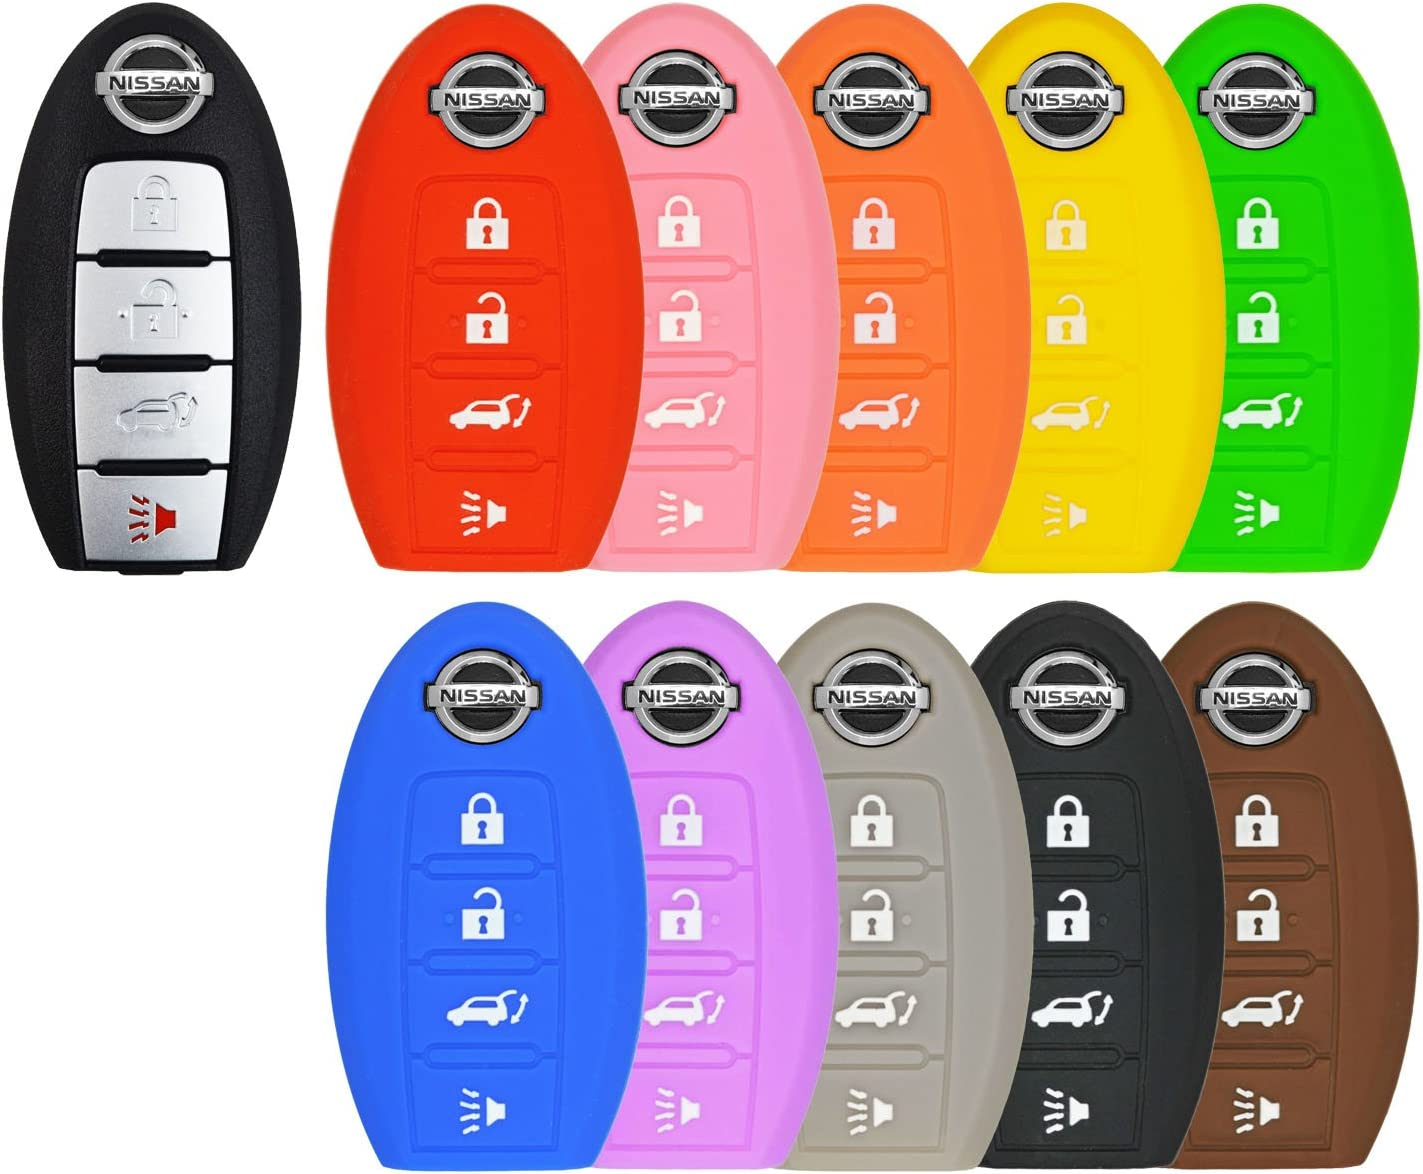 qualitykeylessplus Pink Rubber Case Silicone Protective Cover for Nissan 5 Button Remotes with Free KEYTAG